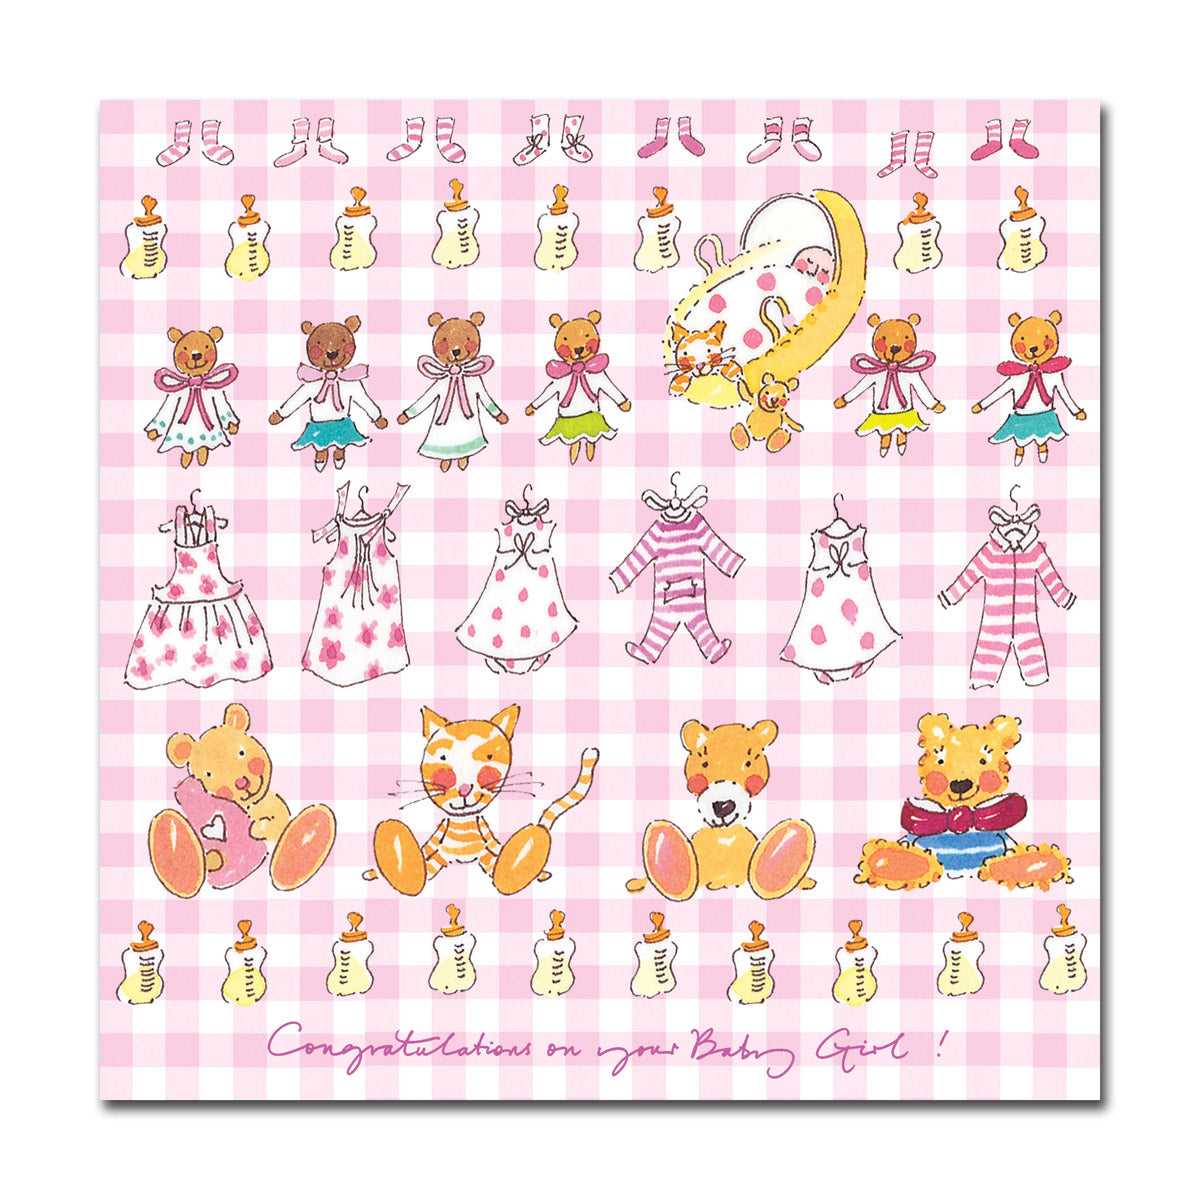 Congratulations Baby Girl! Greeting Card